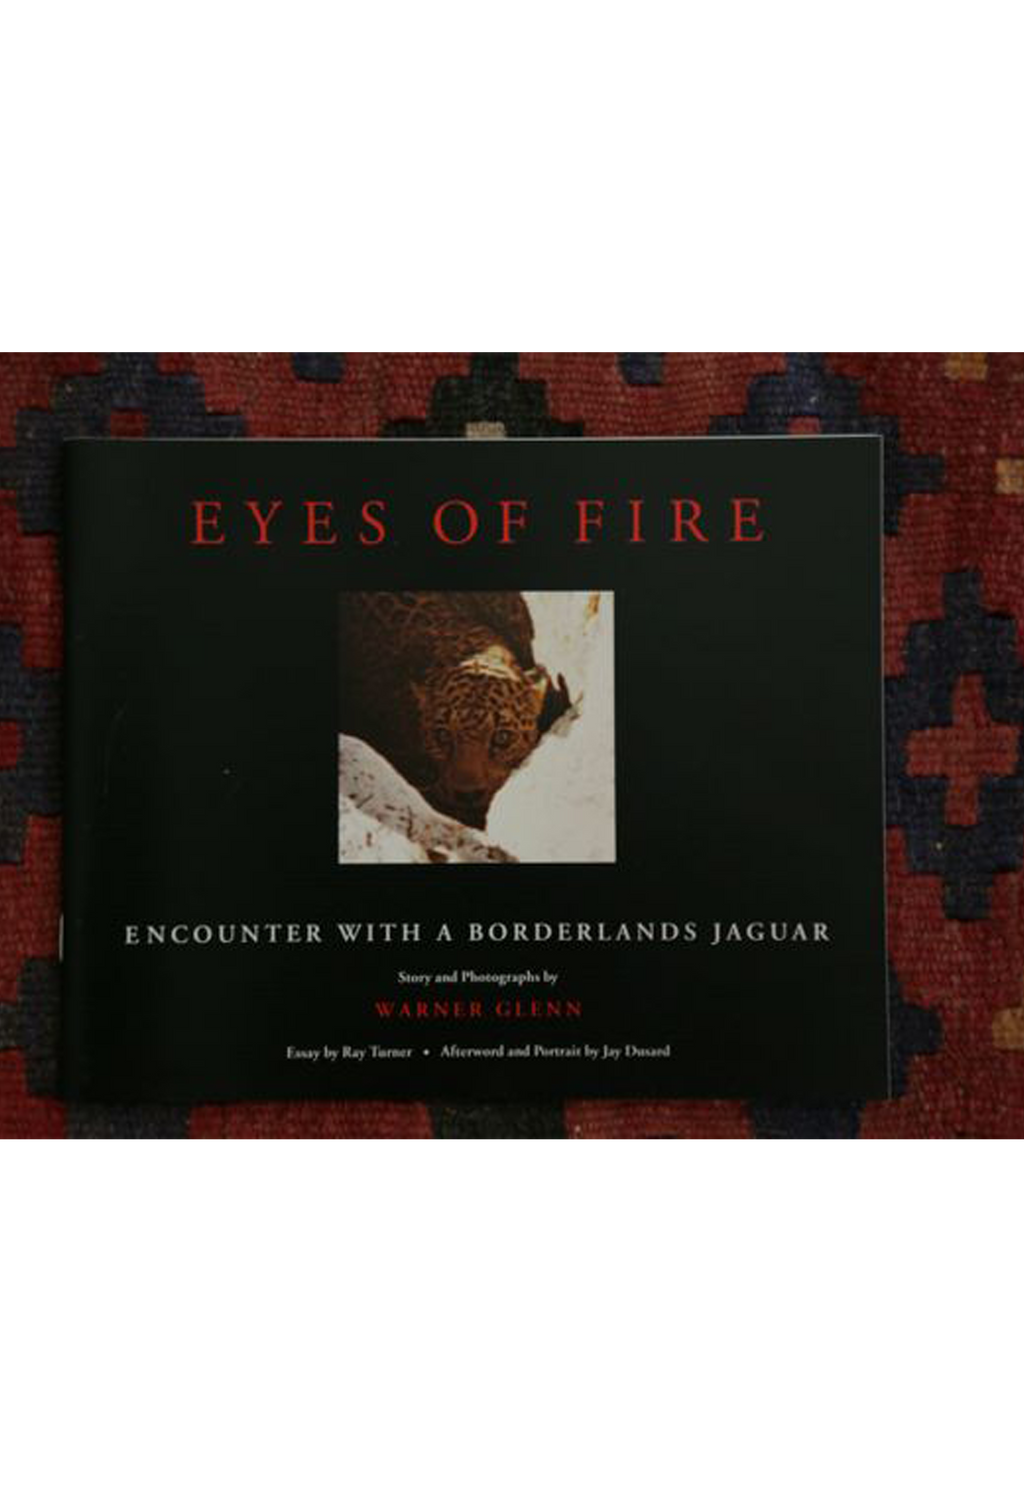 """Eyes of Fire: Encounter with a Borderlands Jaguar"" by Warner Glenn"